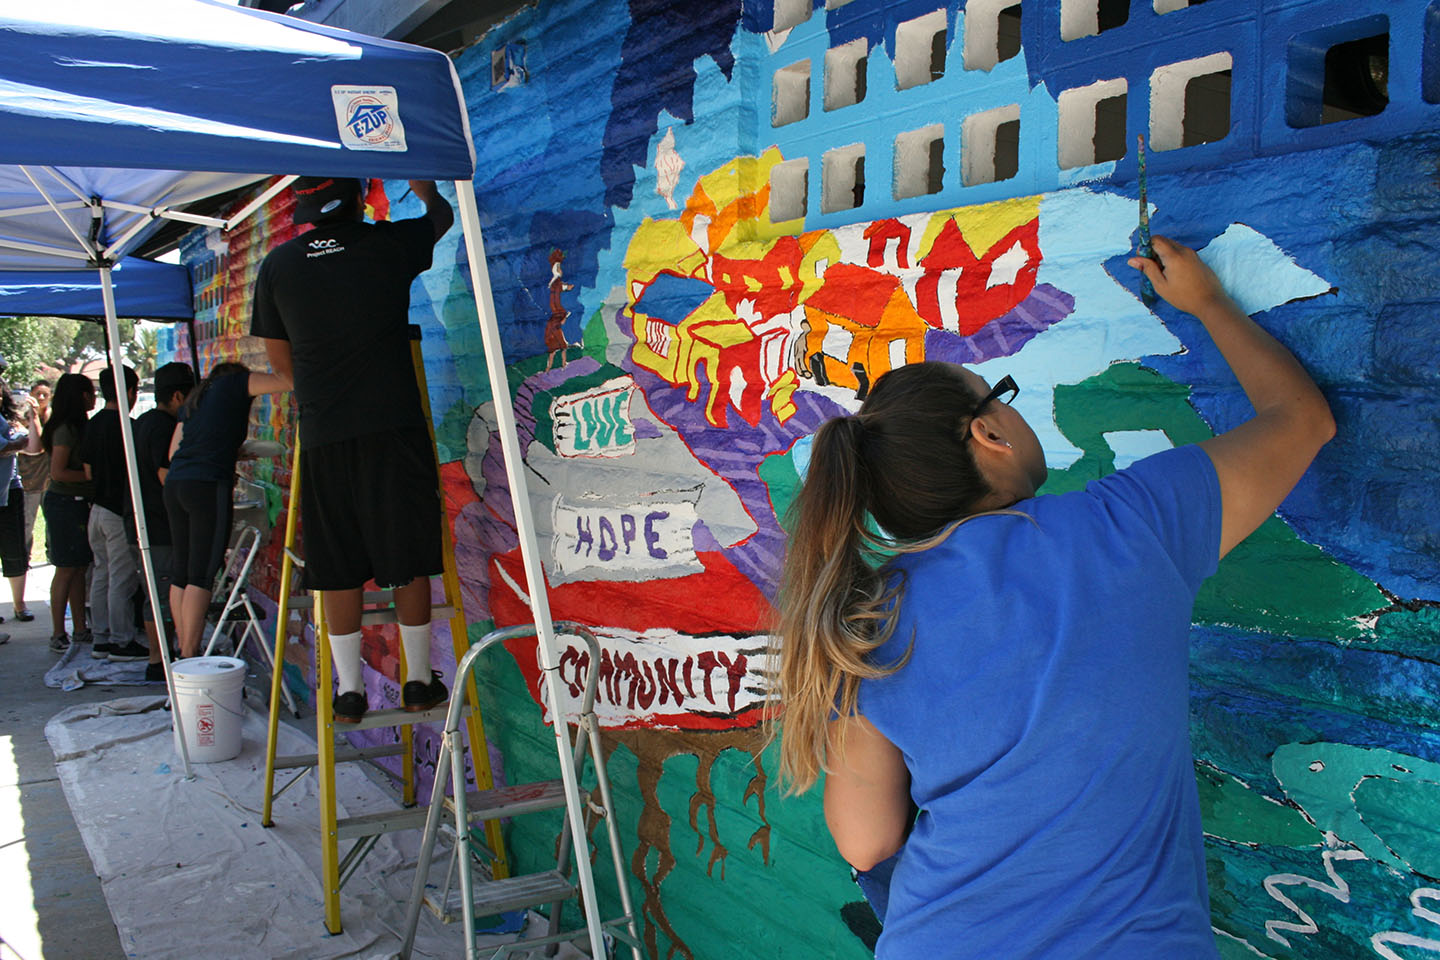 Teens from Project REACH pitch in to paint. The mural is part of a neighborhood beautification project. Photo by Promise Yee